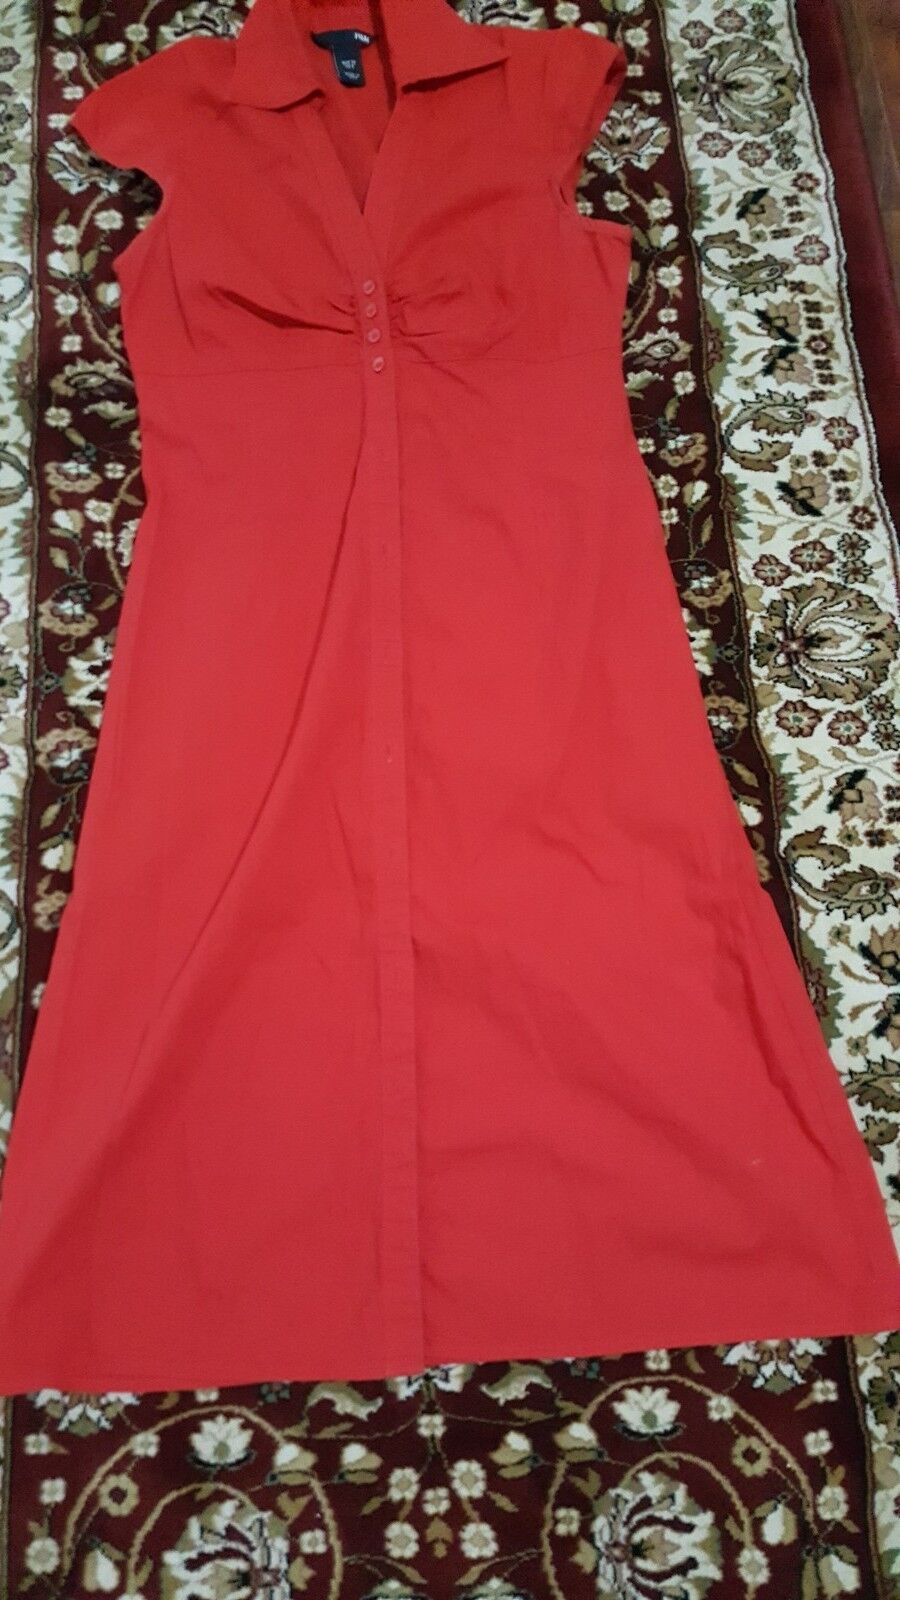 3f7f85793138fe Lot junior cloths 3 skirts & 2 dress and top size S 1 of nrzqcn5183 ...